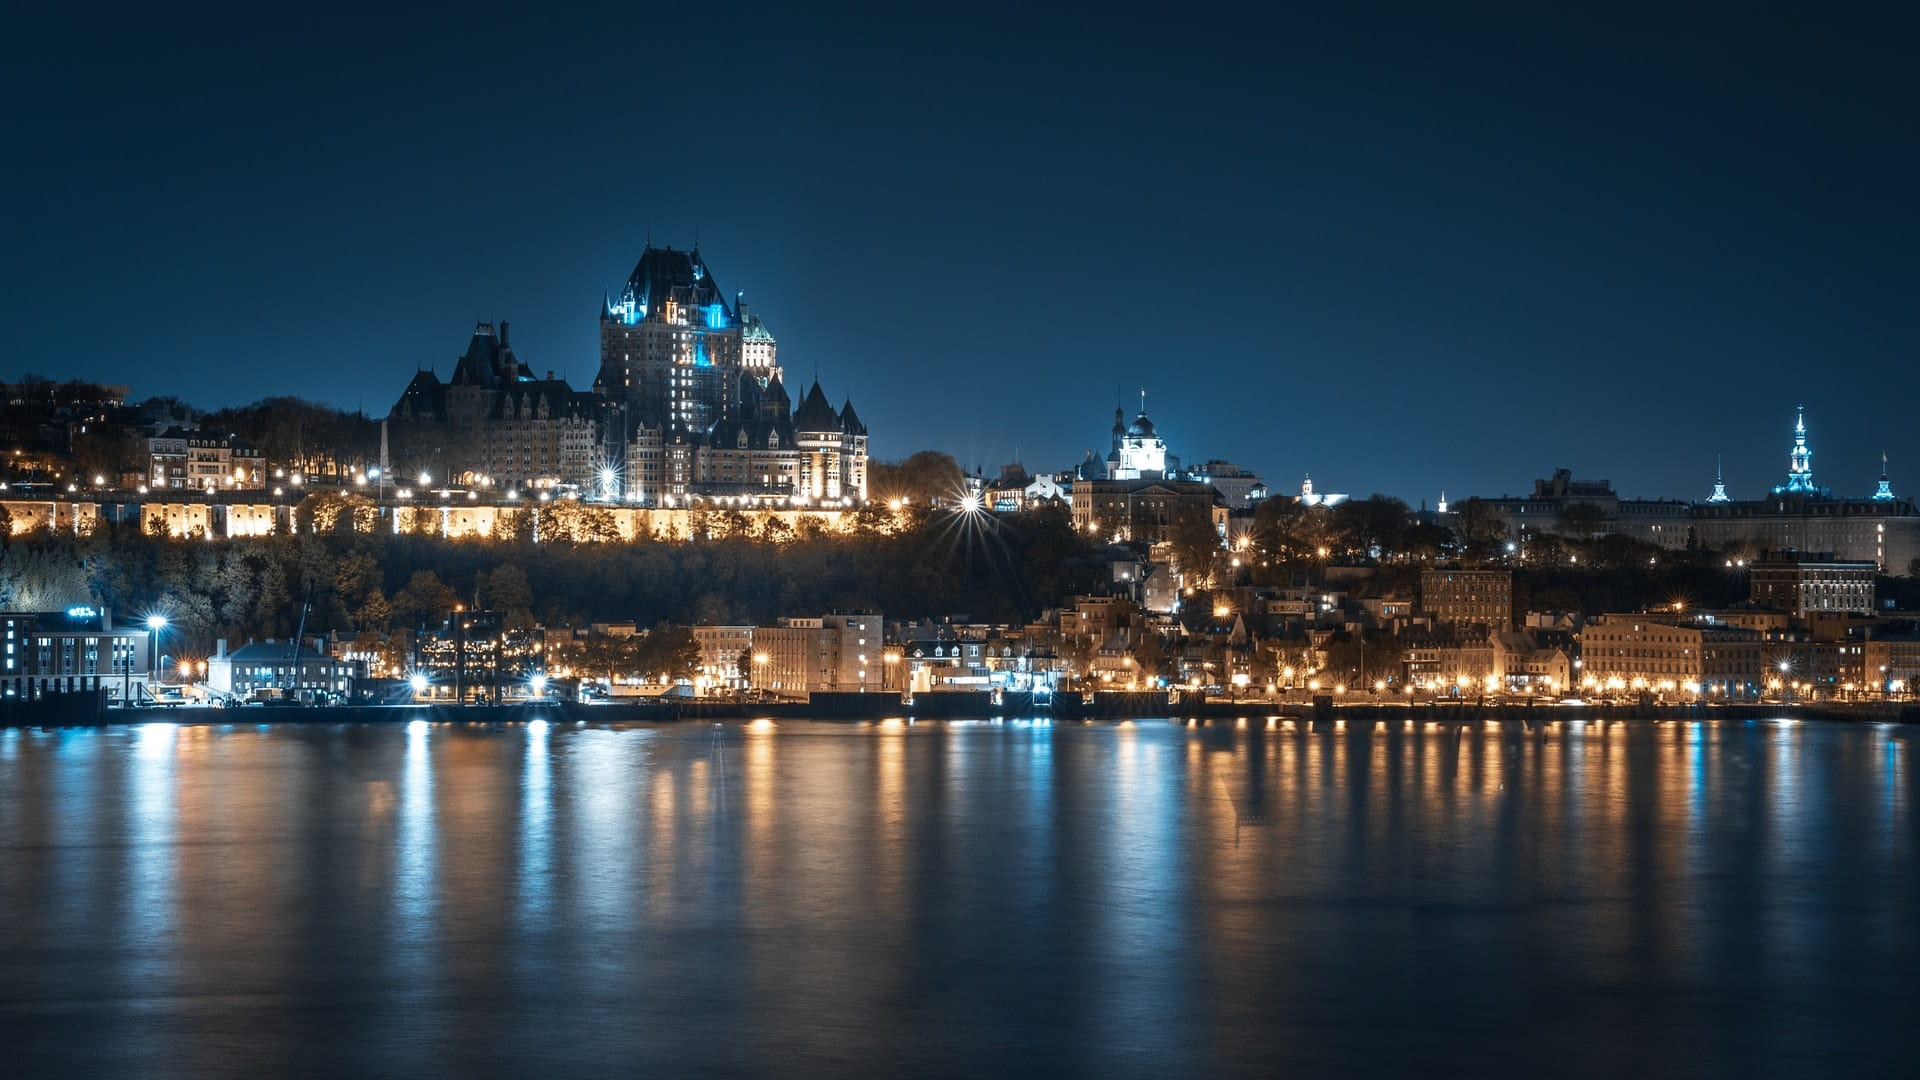 Quebec City skyline at night - the view you'll have after moving from Toronto to Quebec City